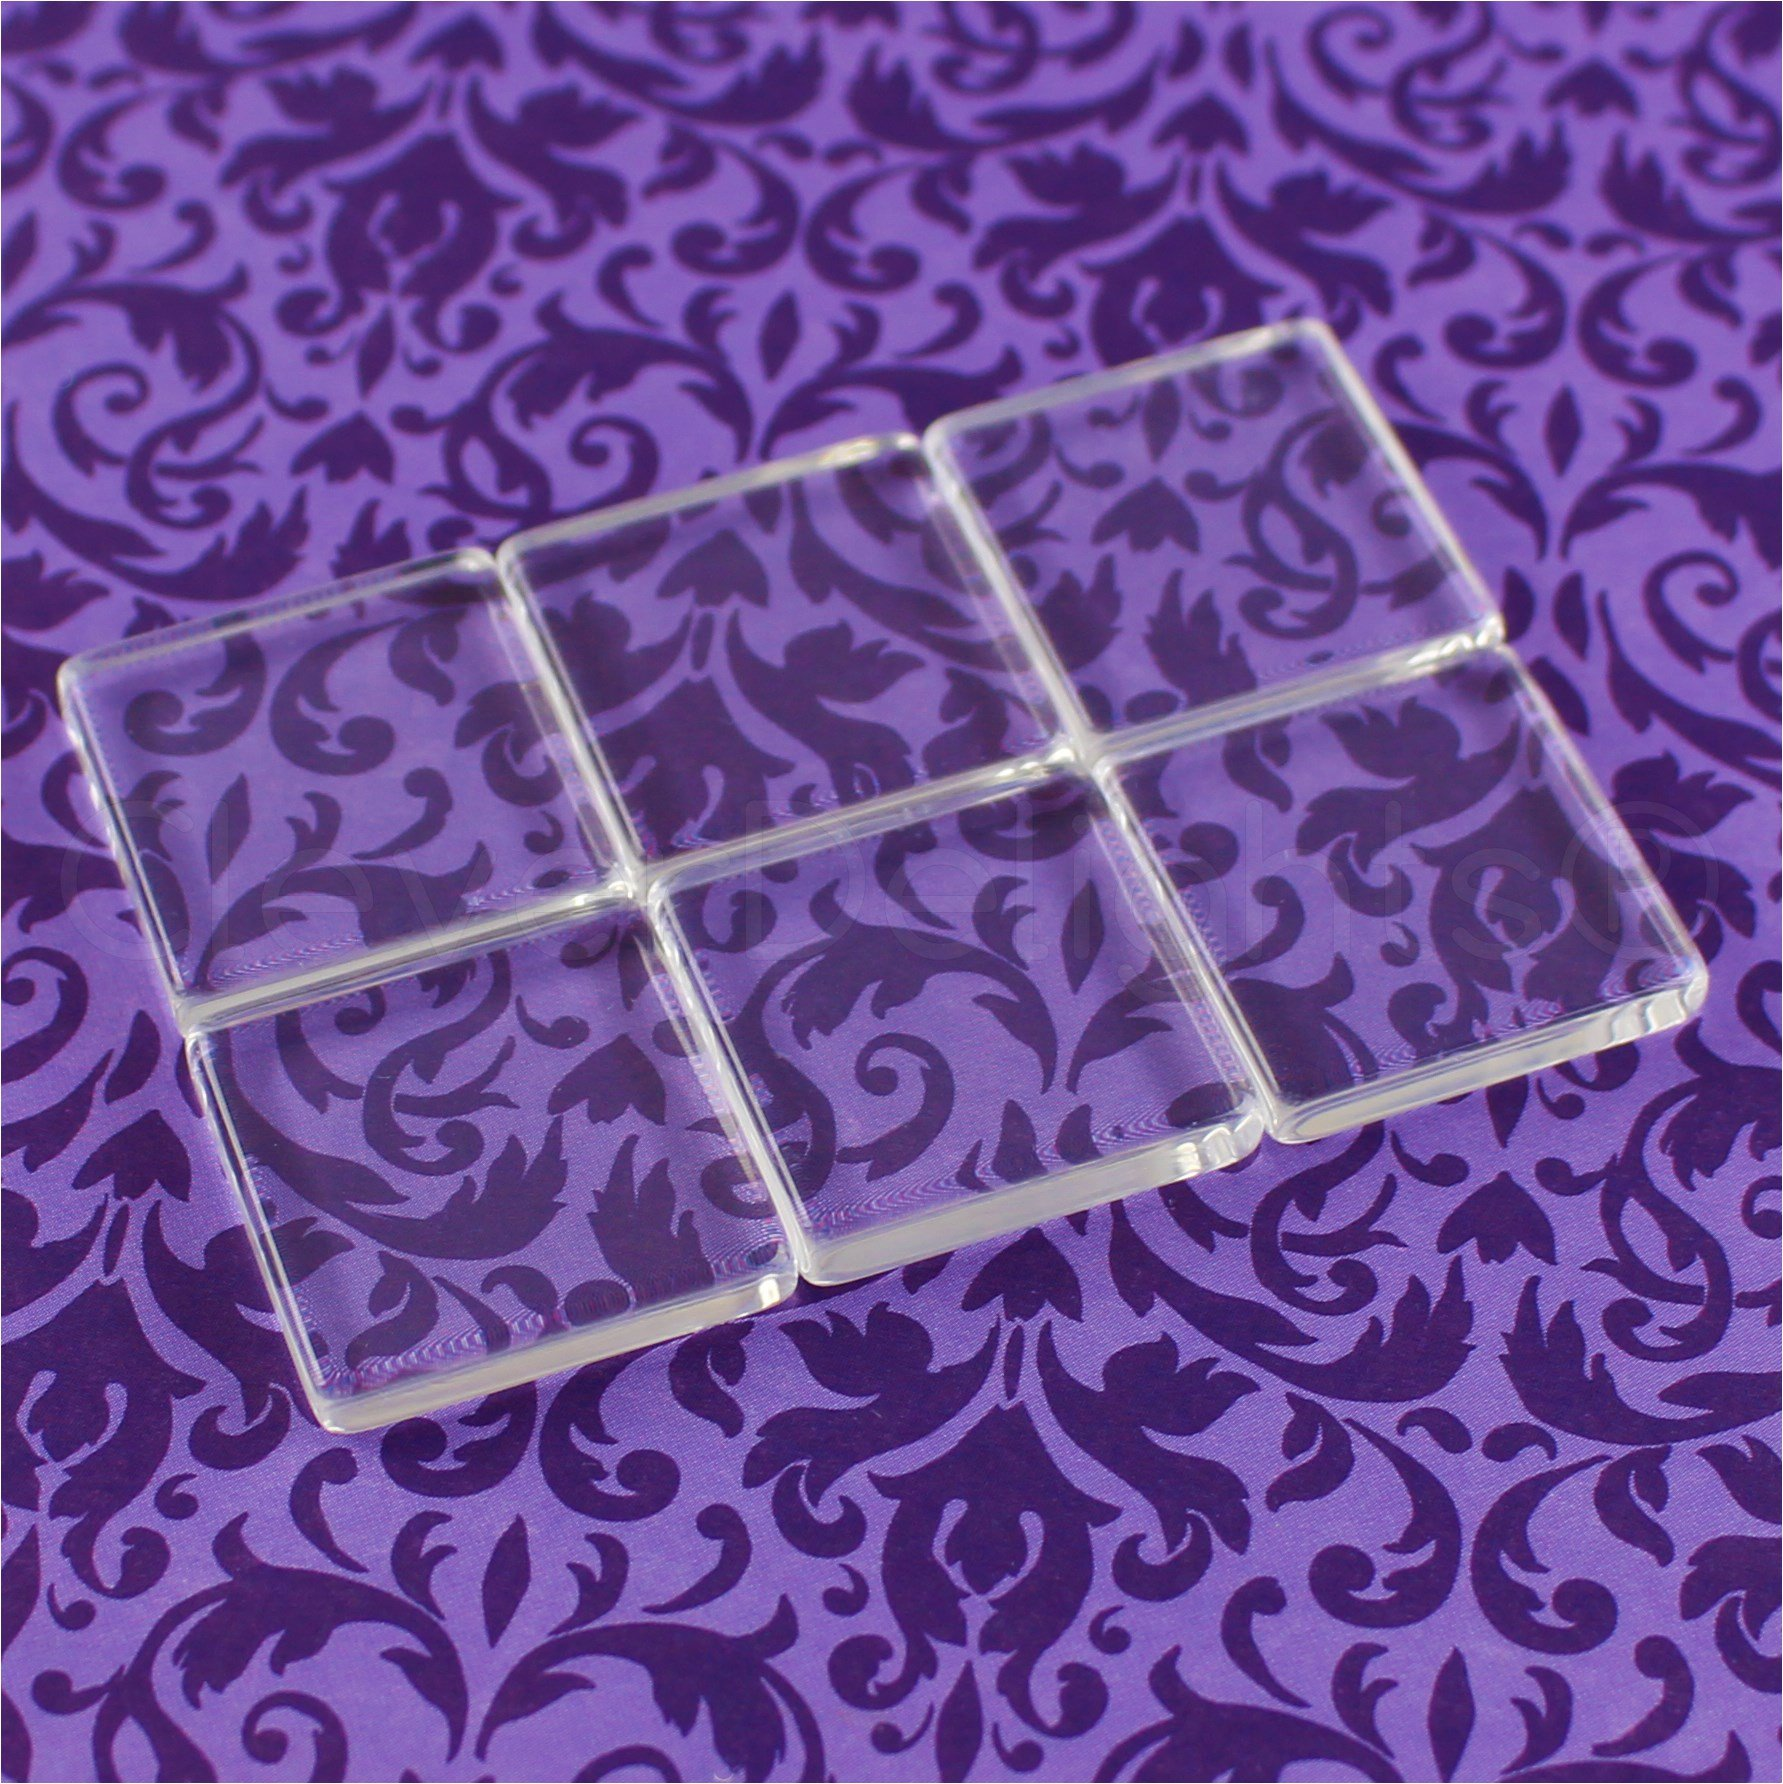 100 CleverDelights Square Glass Tiles - 1 Inch - Clear Tiles - Glass Cabochons - For Photo Pendants Mosaics Trays - 1'' 25mm Tiles - 4mm Thick